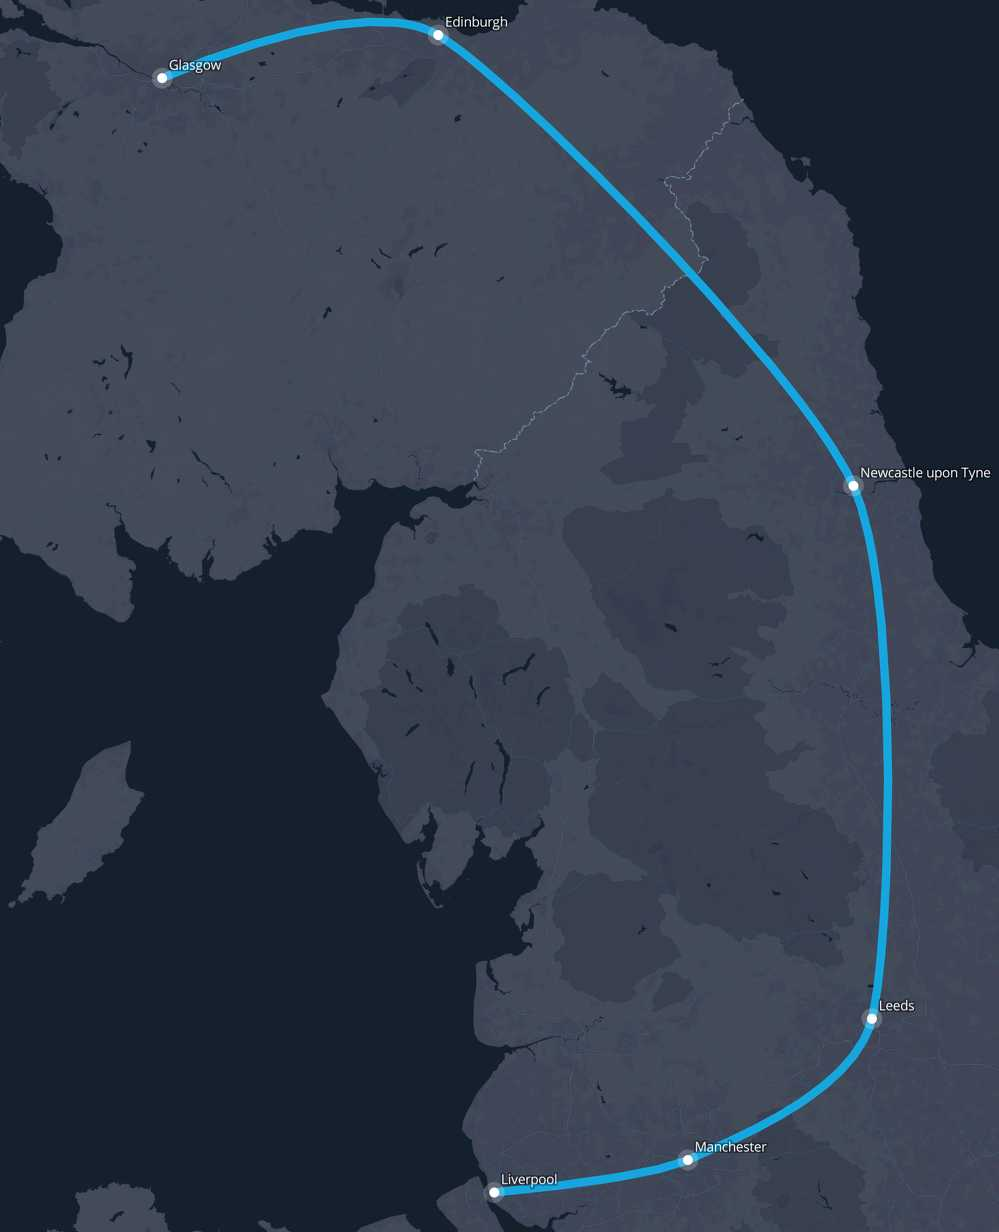 Glasgow To Liverpool Route